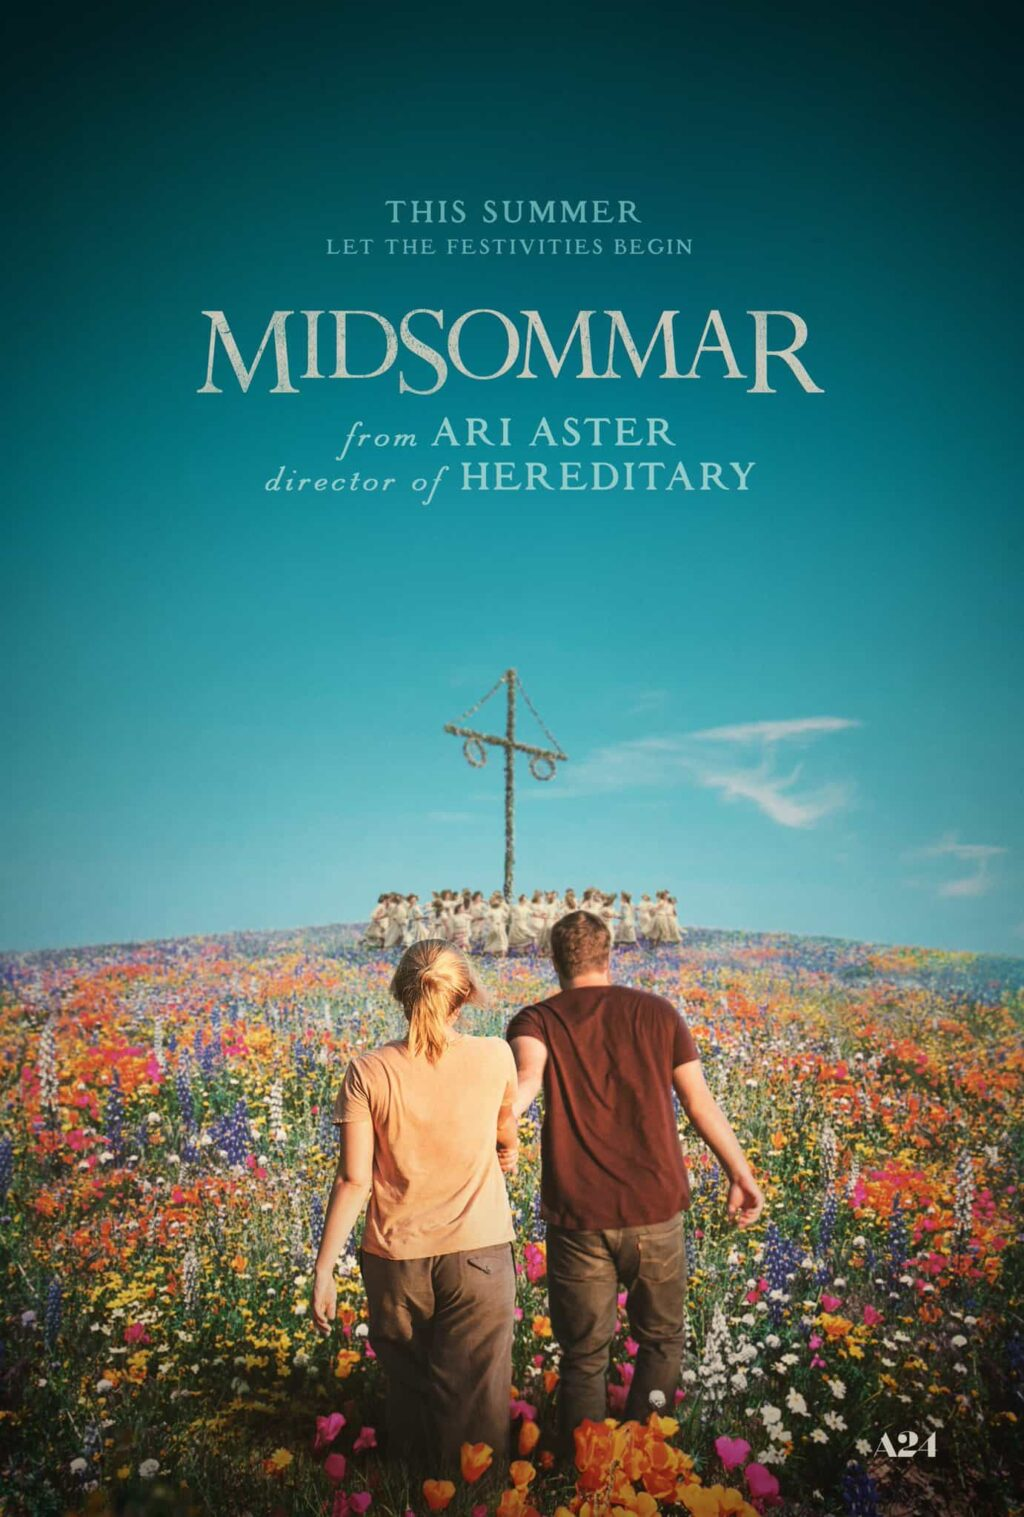 midsommarposter 1024x1517 - Jerry Smith's Top 10 Horror Movies of 2019